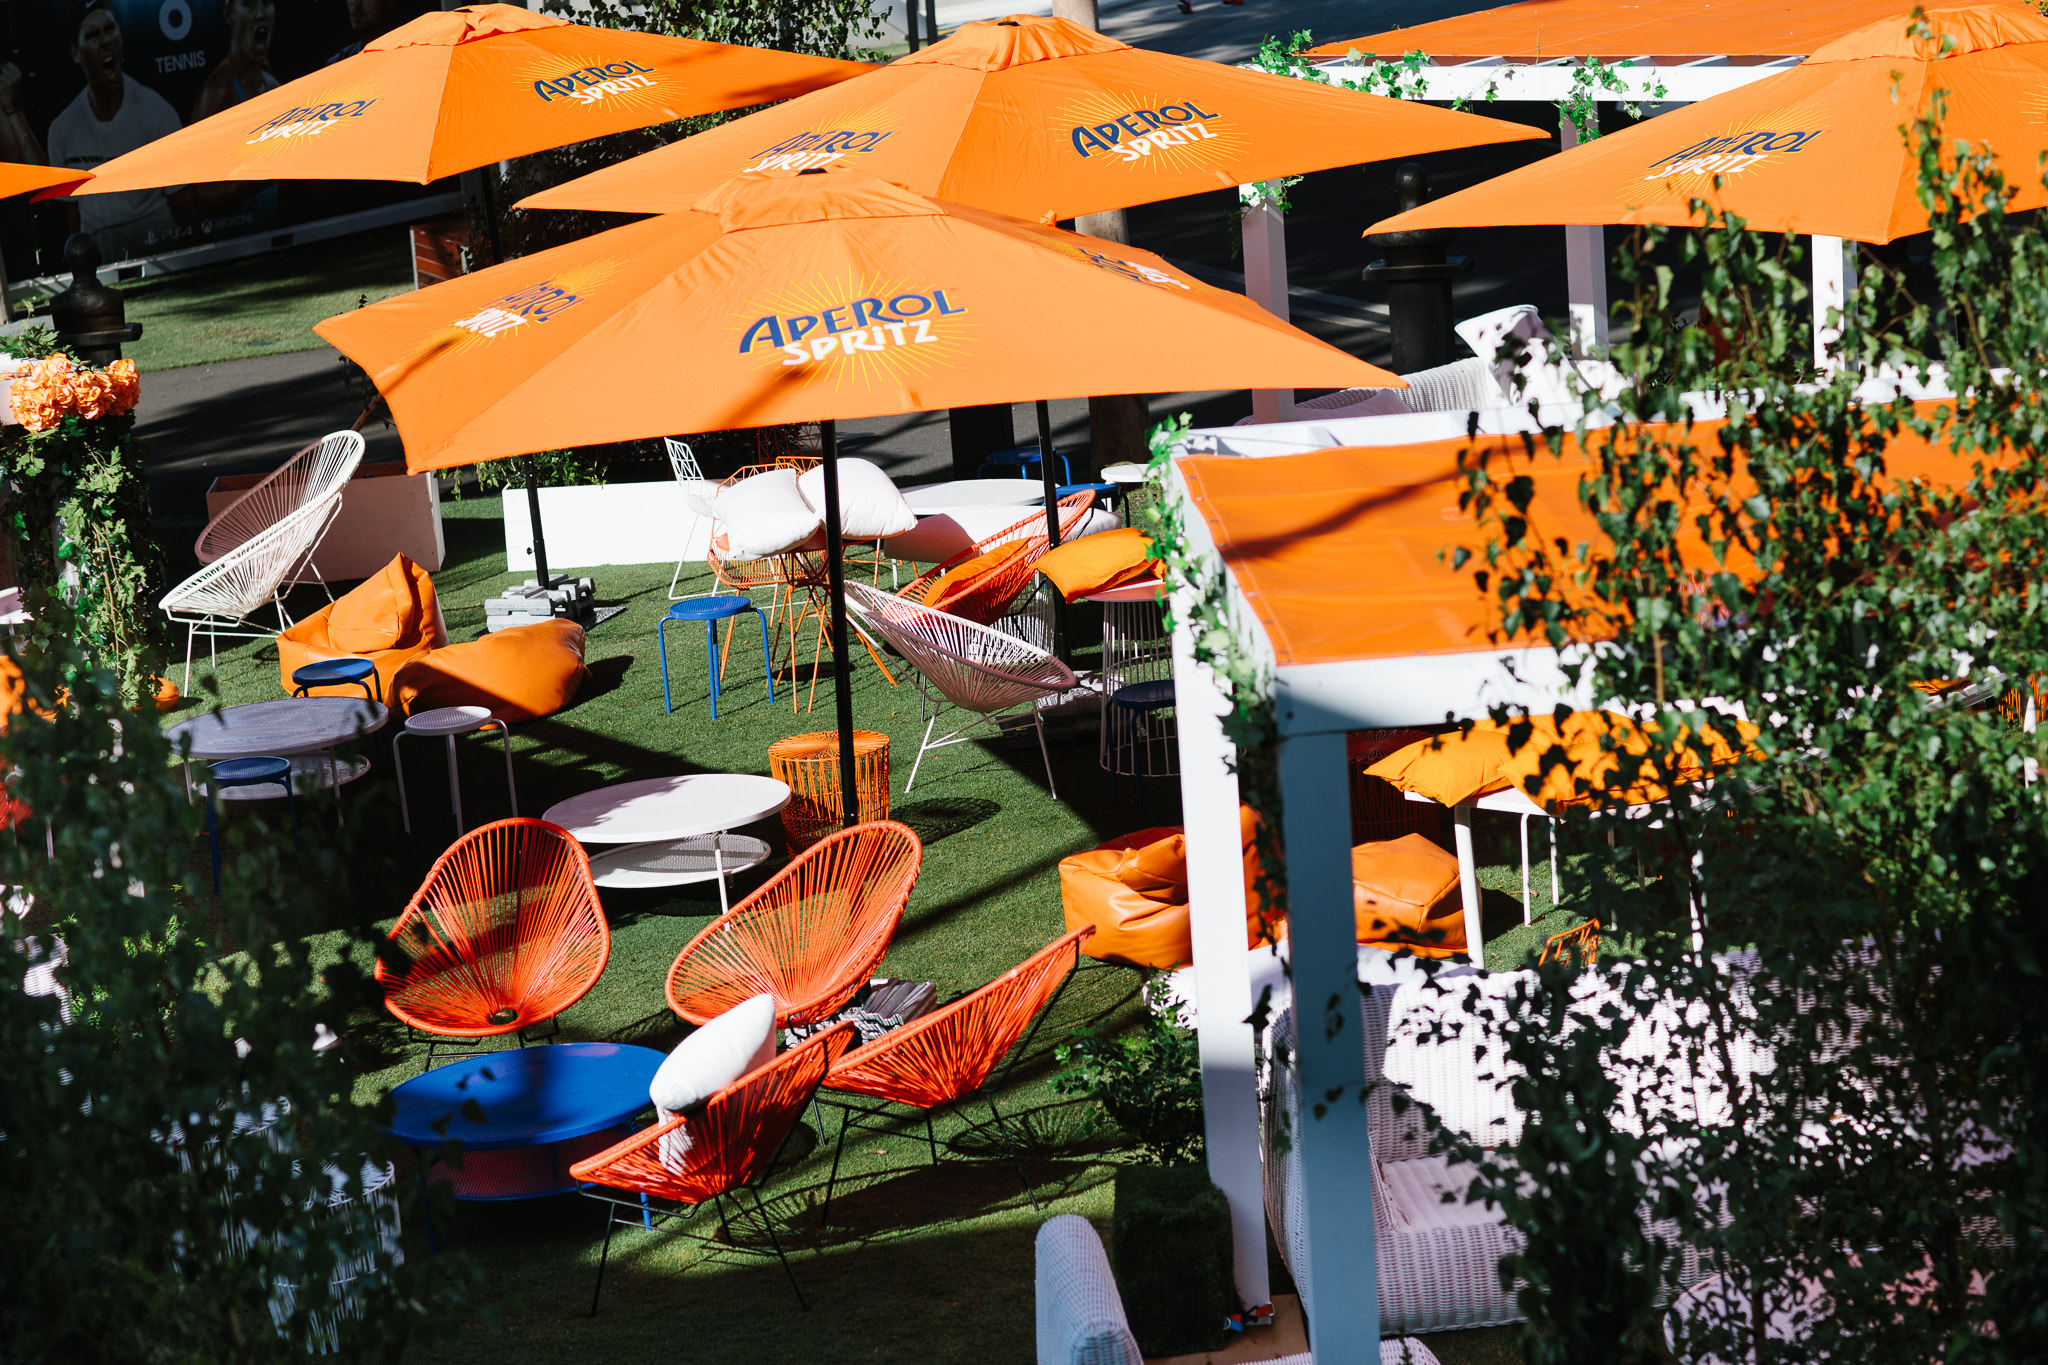 aperol spritz bar at event